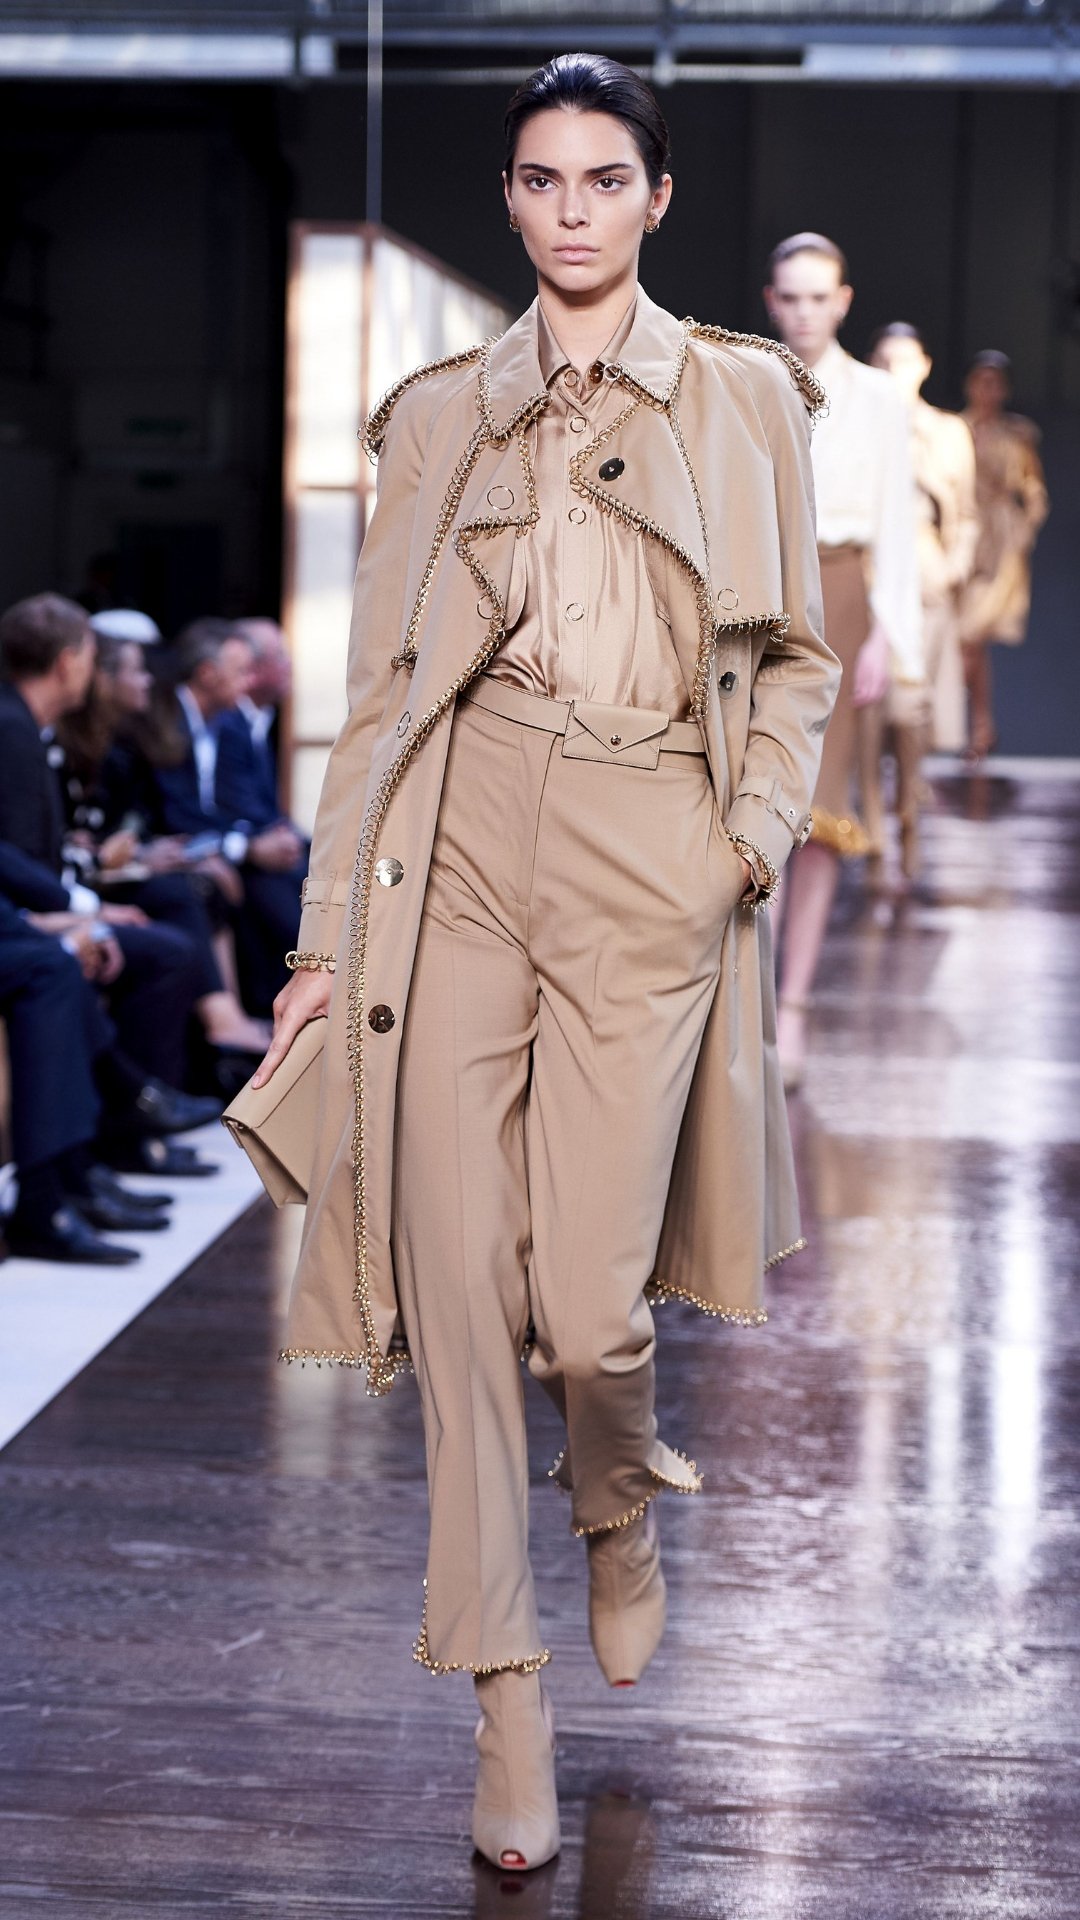 Burberry And Vivienne Westwood Release More Details On Their Collaboration